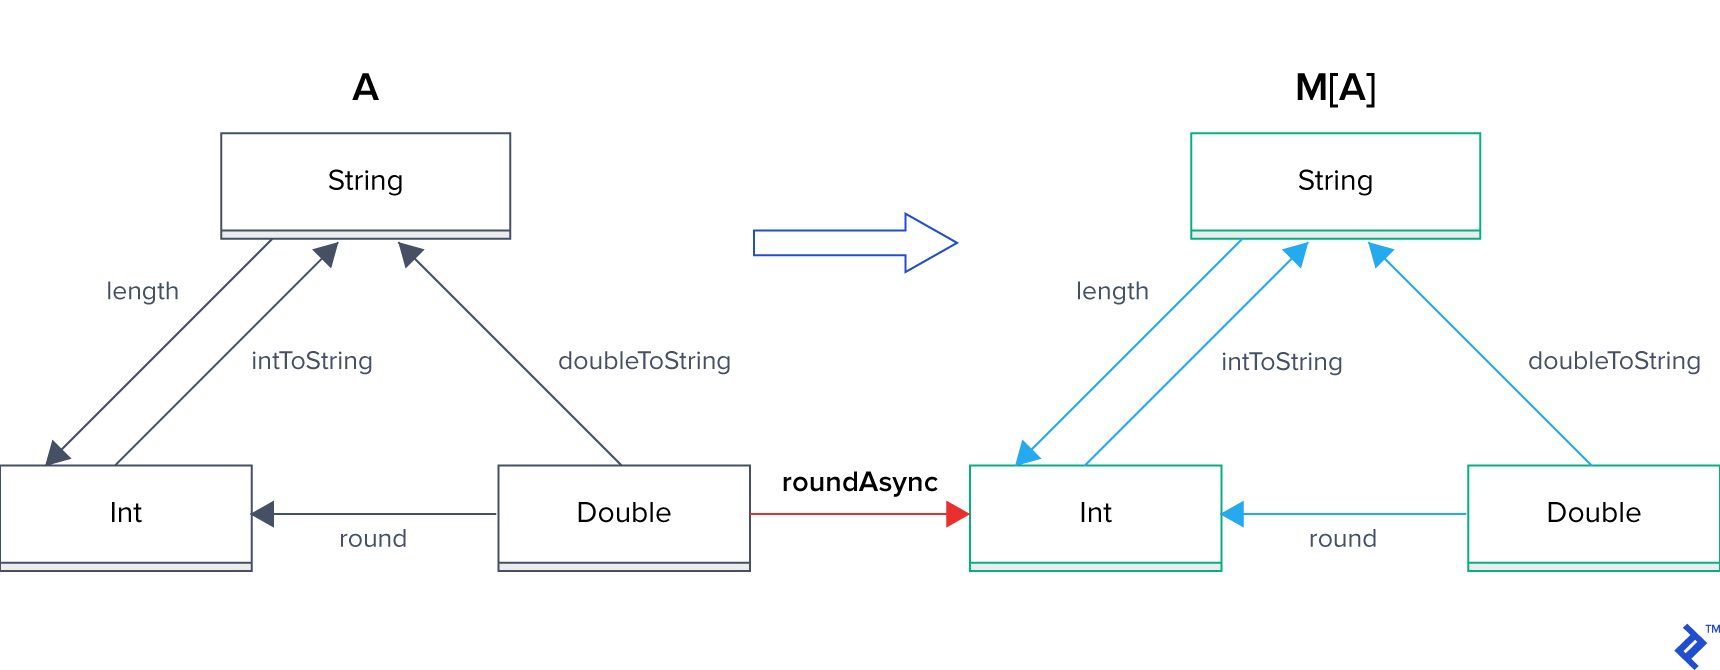 "Creating a new category: Categories A and M[A], plus a red arrow from A's Double to M[A]'s Int, labelled ""roundAsync"". M[A] reuses every value and function of A at this point."